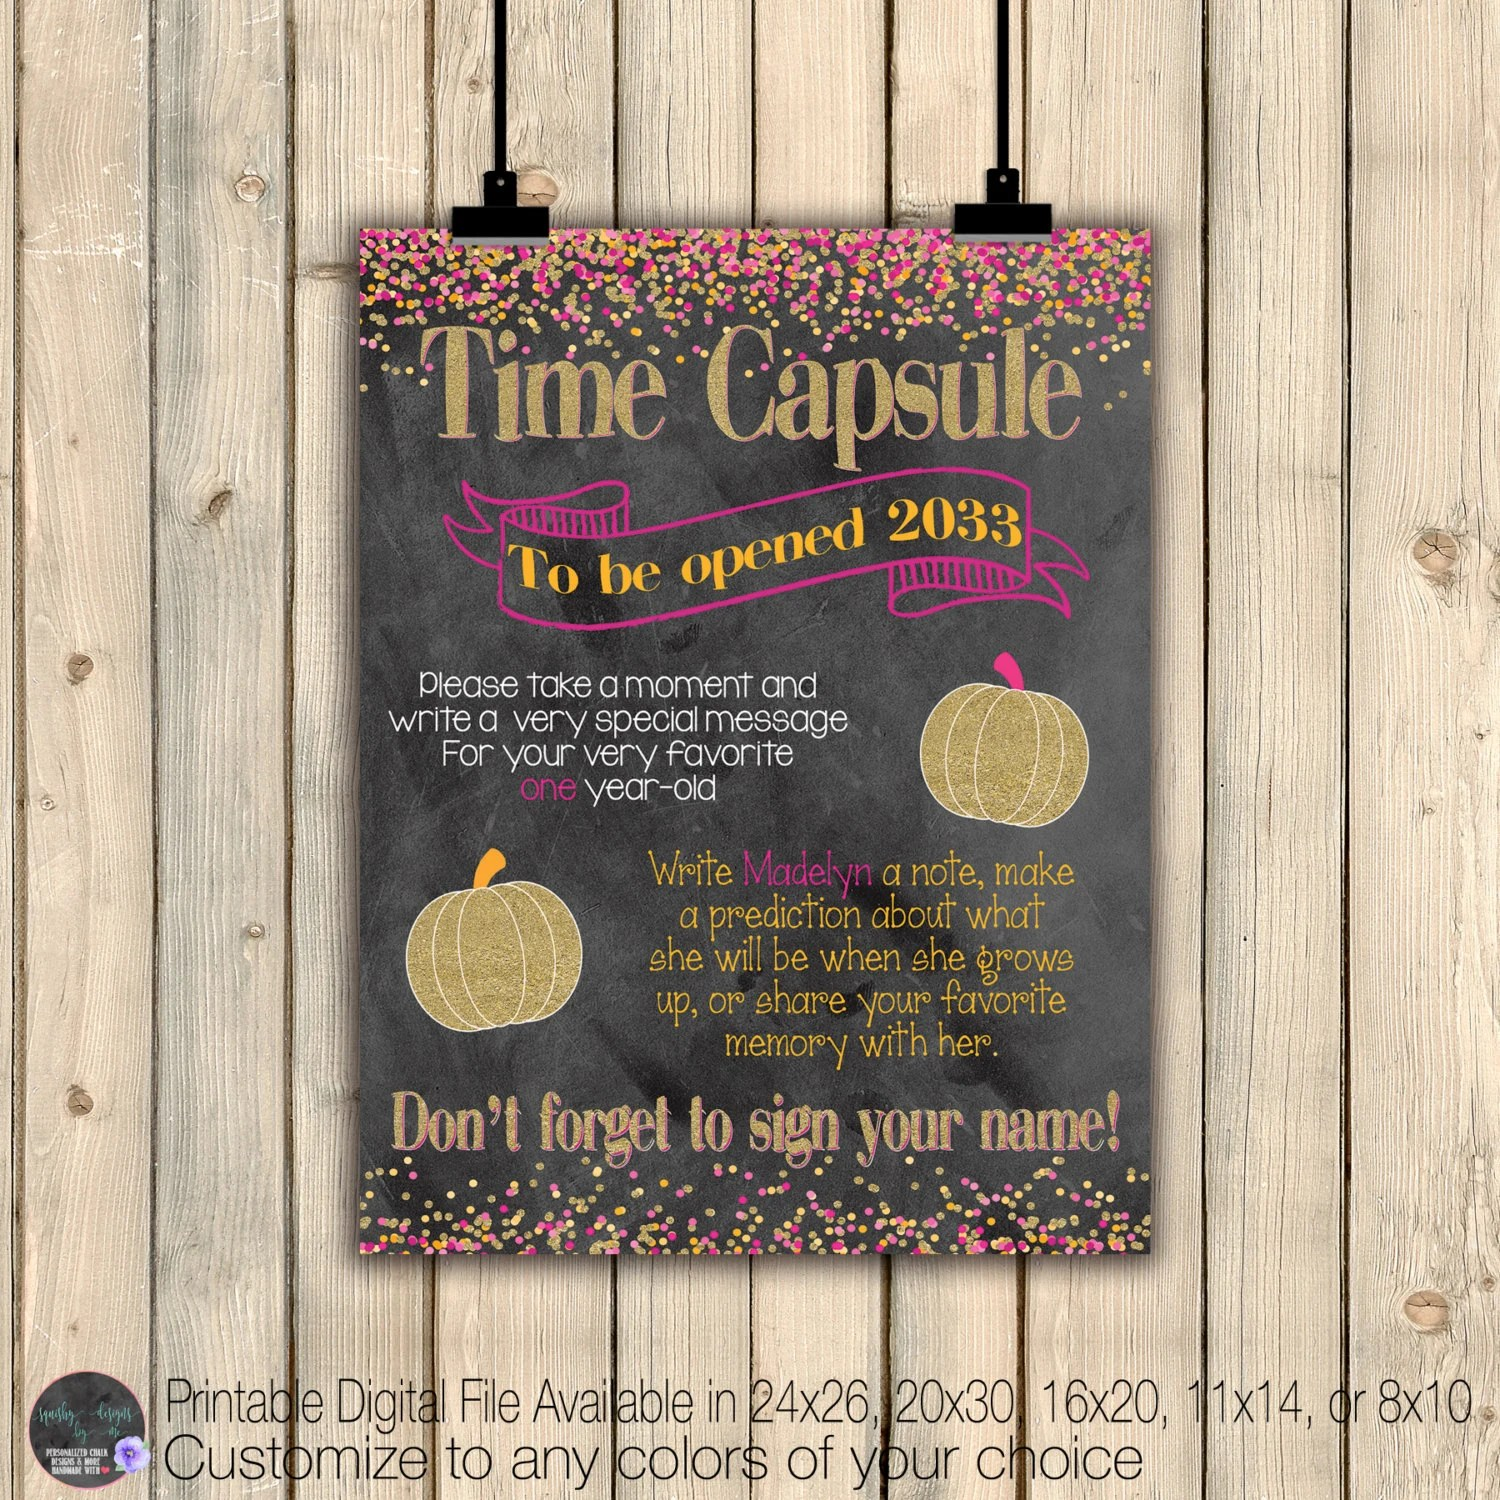 Banners Signs Pumpkin Time Capsule Instructions First 1st Birthday Keepsake Pumpkin Birthday Decor Baby Shower Time Capsule Digital Time Capsule Sign Paper Party Supplies